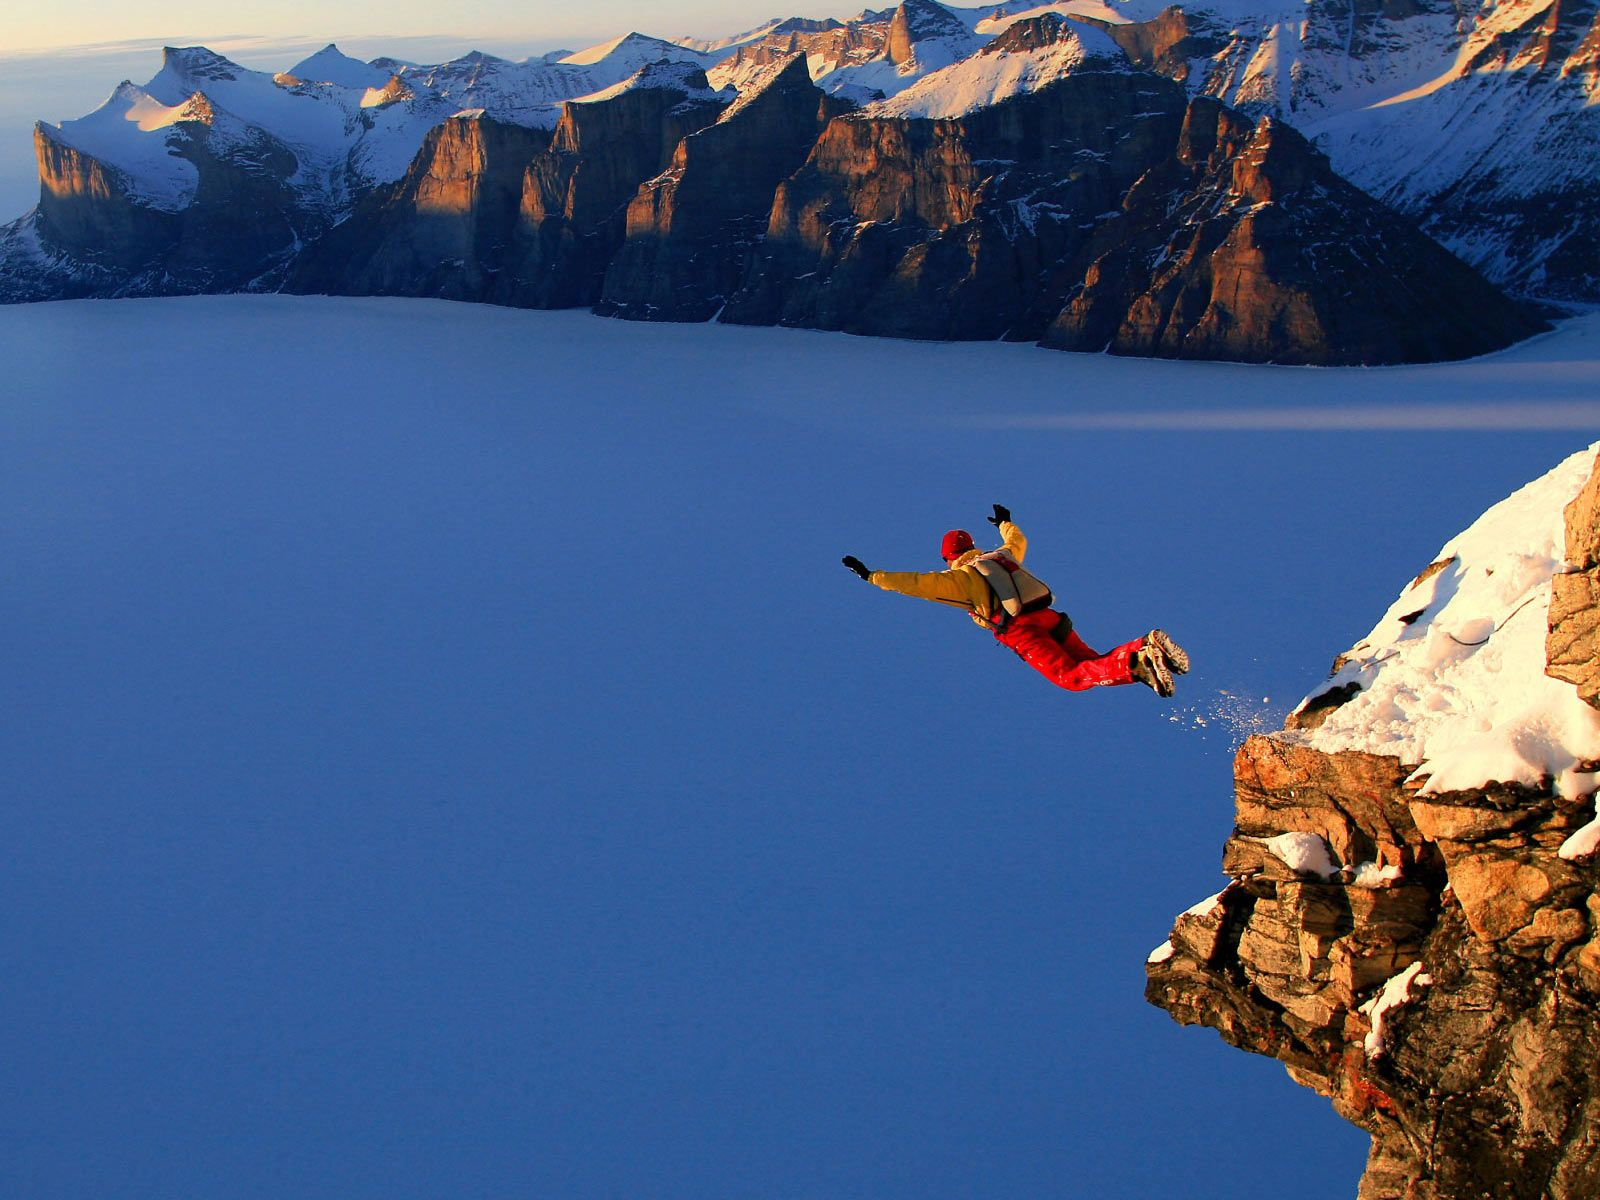 Base Jumping Adventure Sports Wallpaper: Extreme Sport From Rock Climbing To Mountain Parachuting